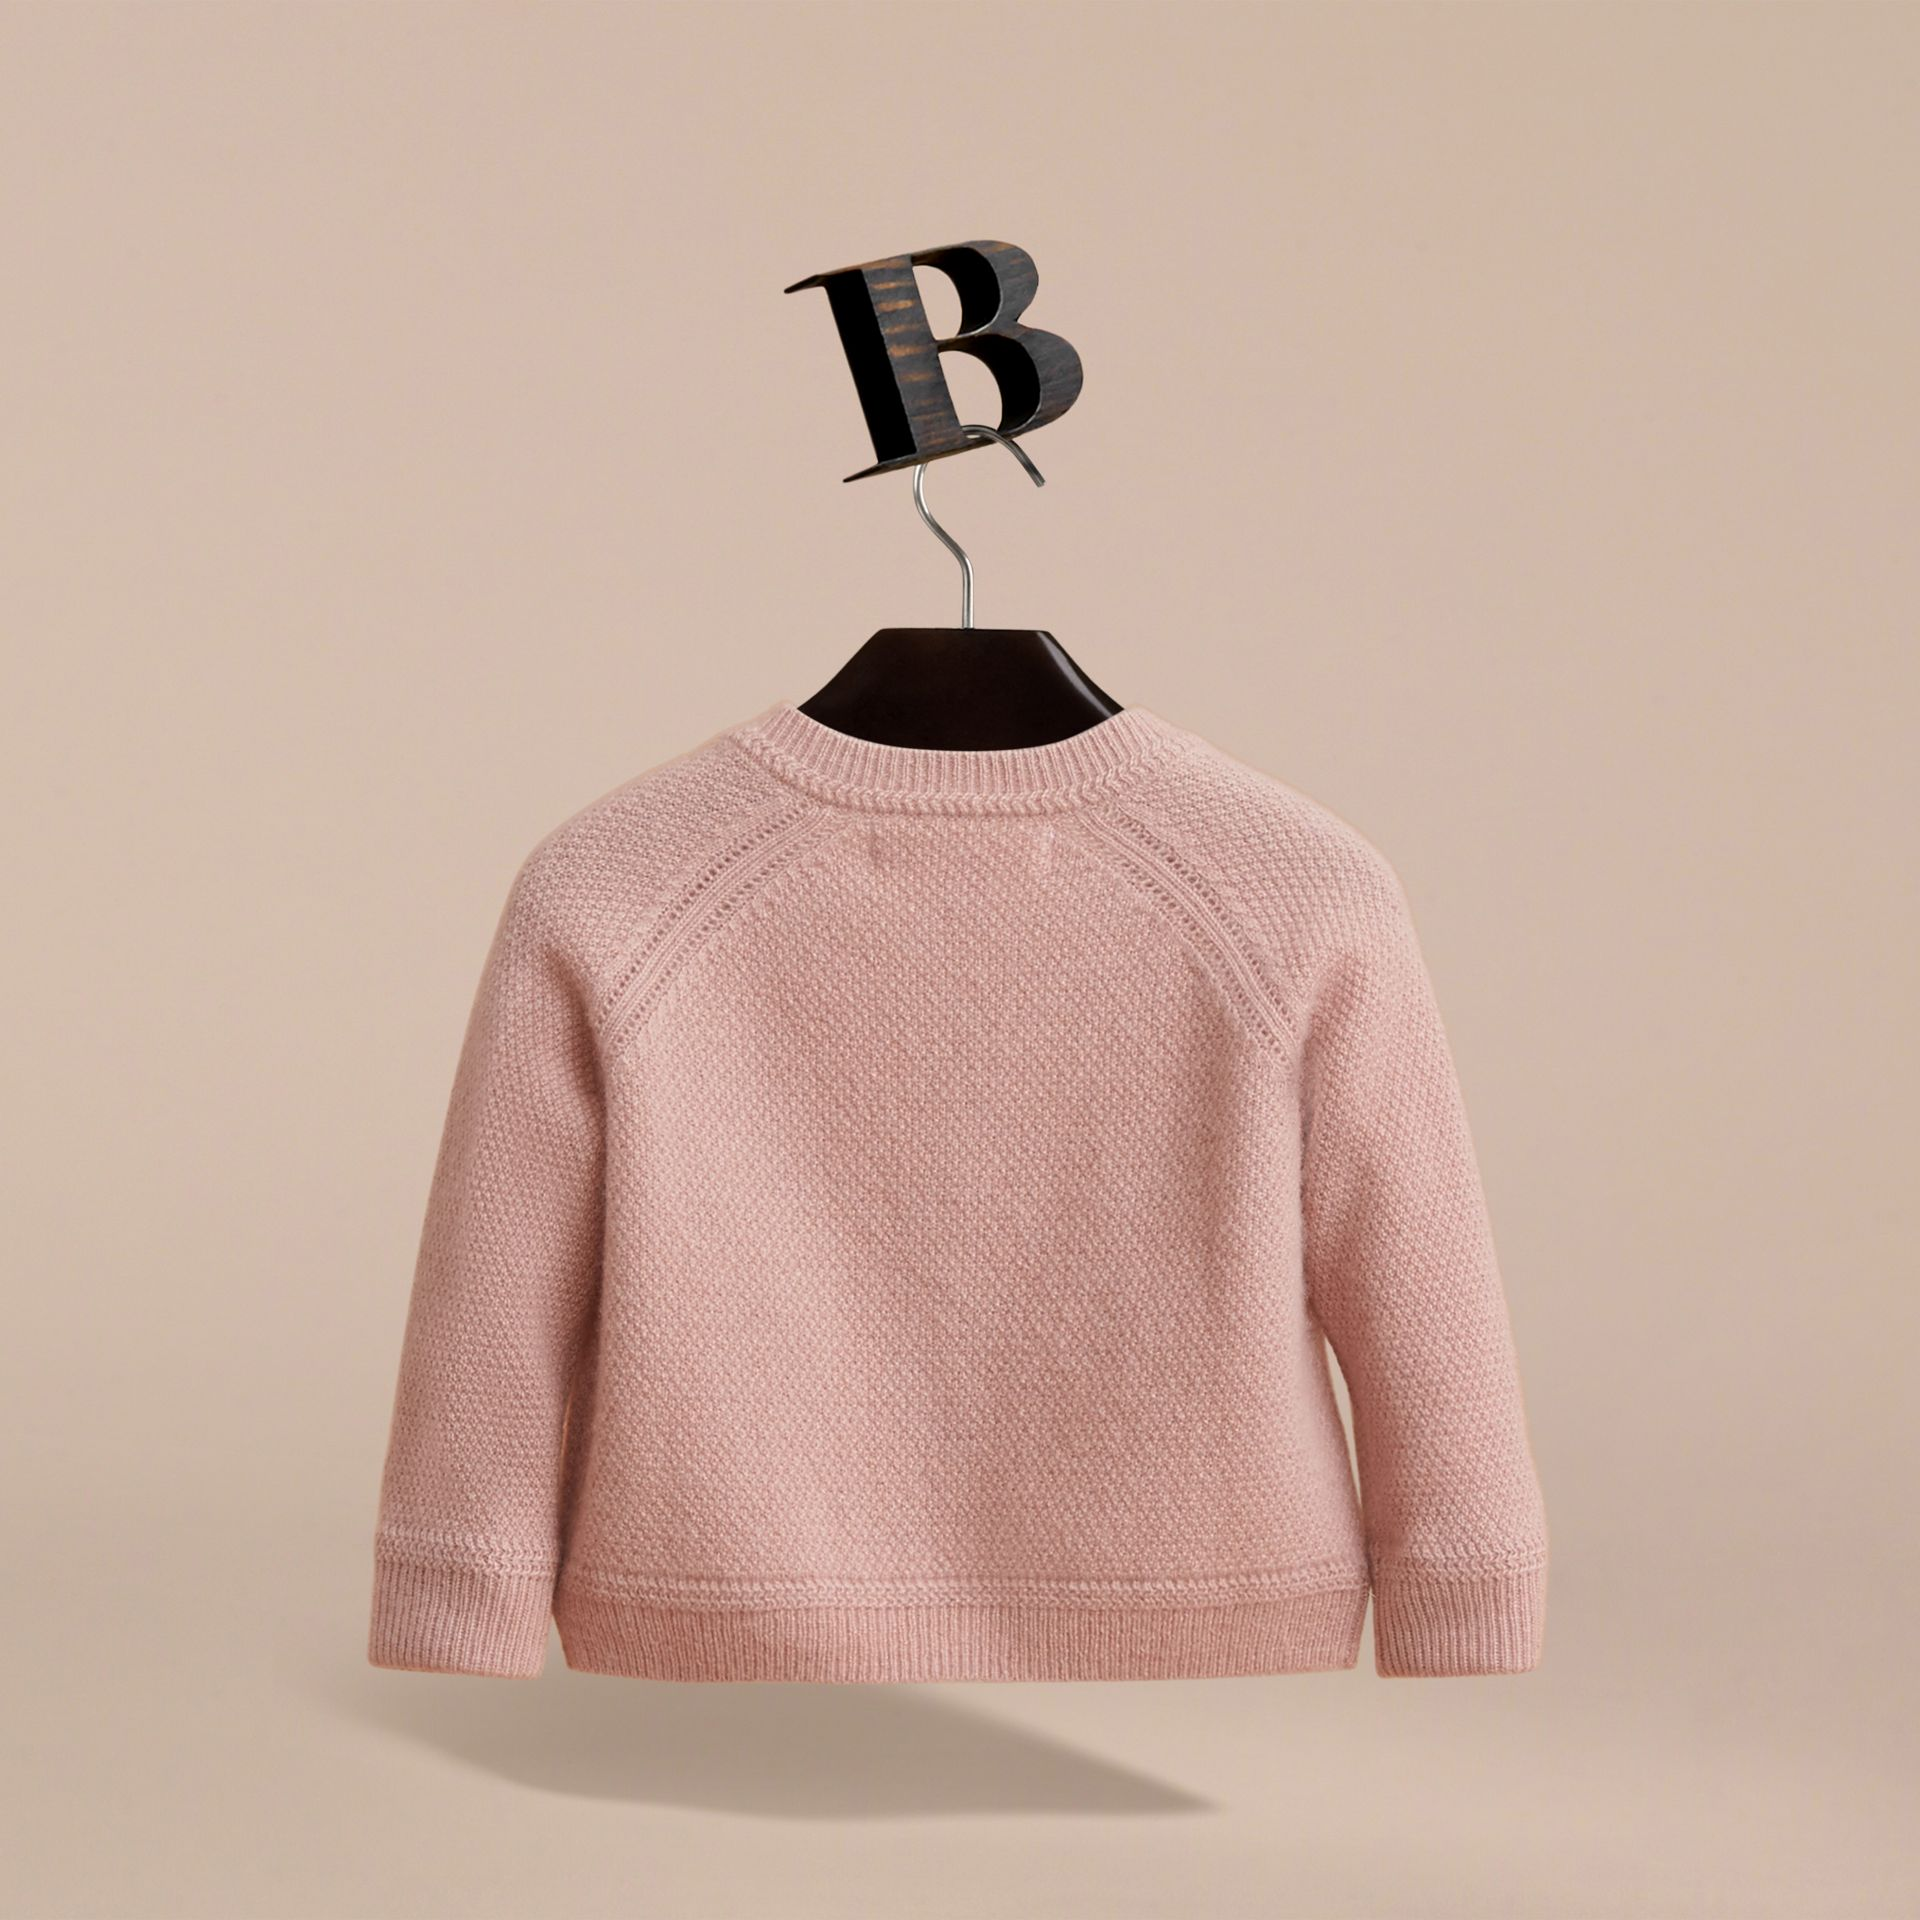 Textured Knit Cashmere Cardigan in Dusty Pink | Burberry Hong Kong - gallery image 4